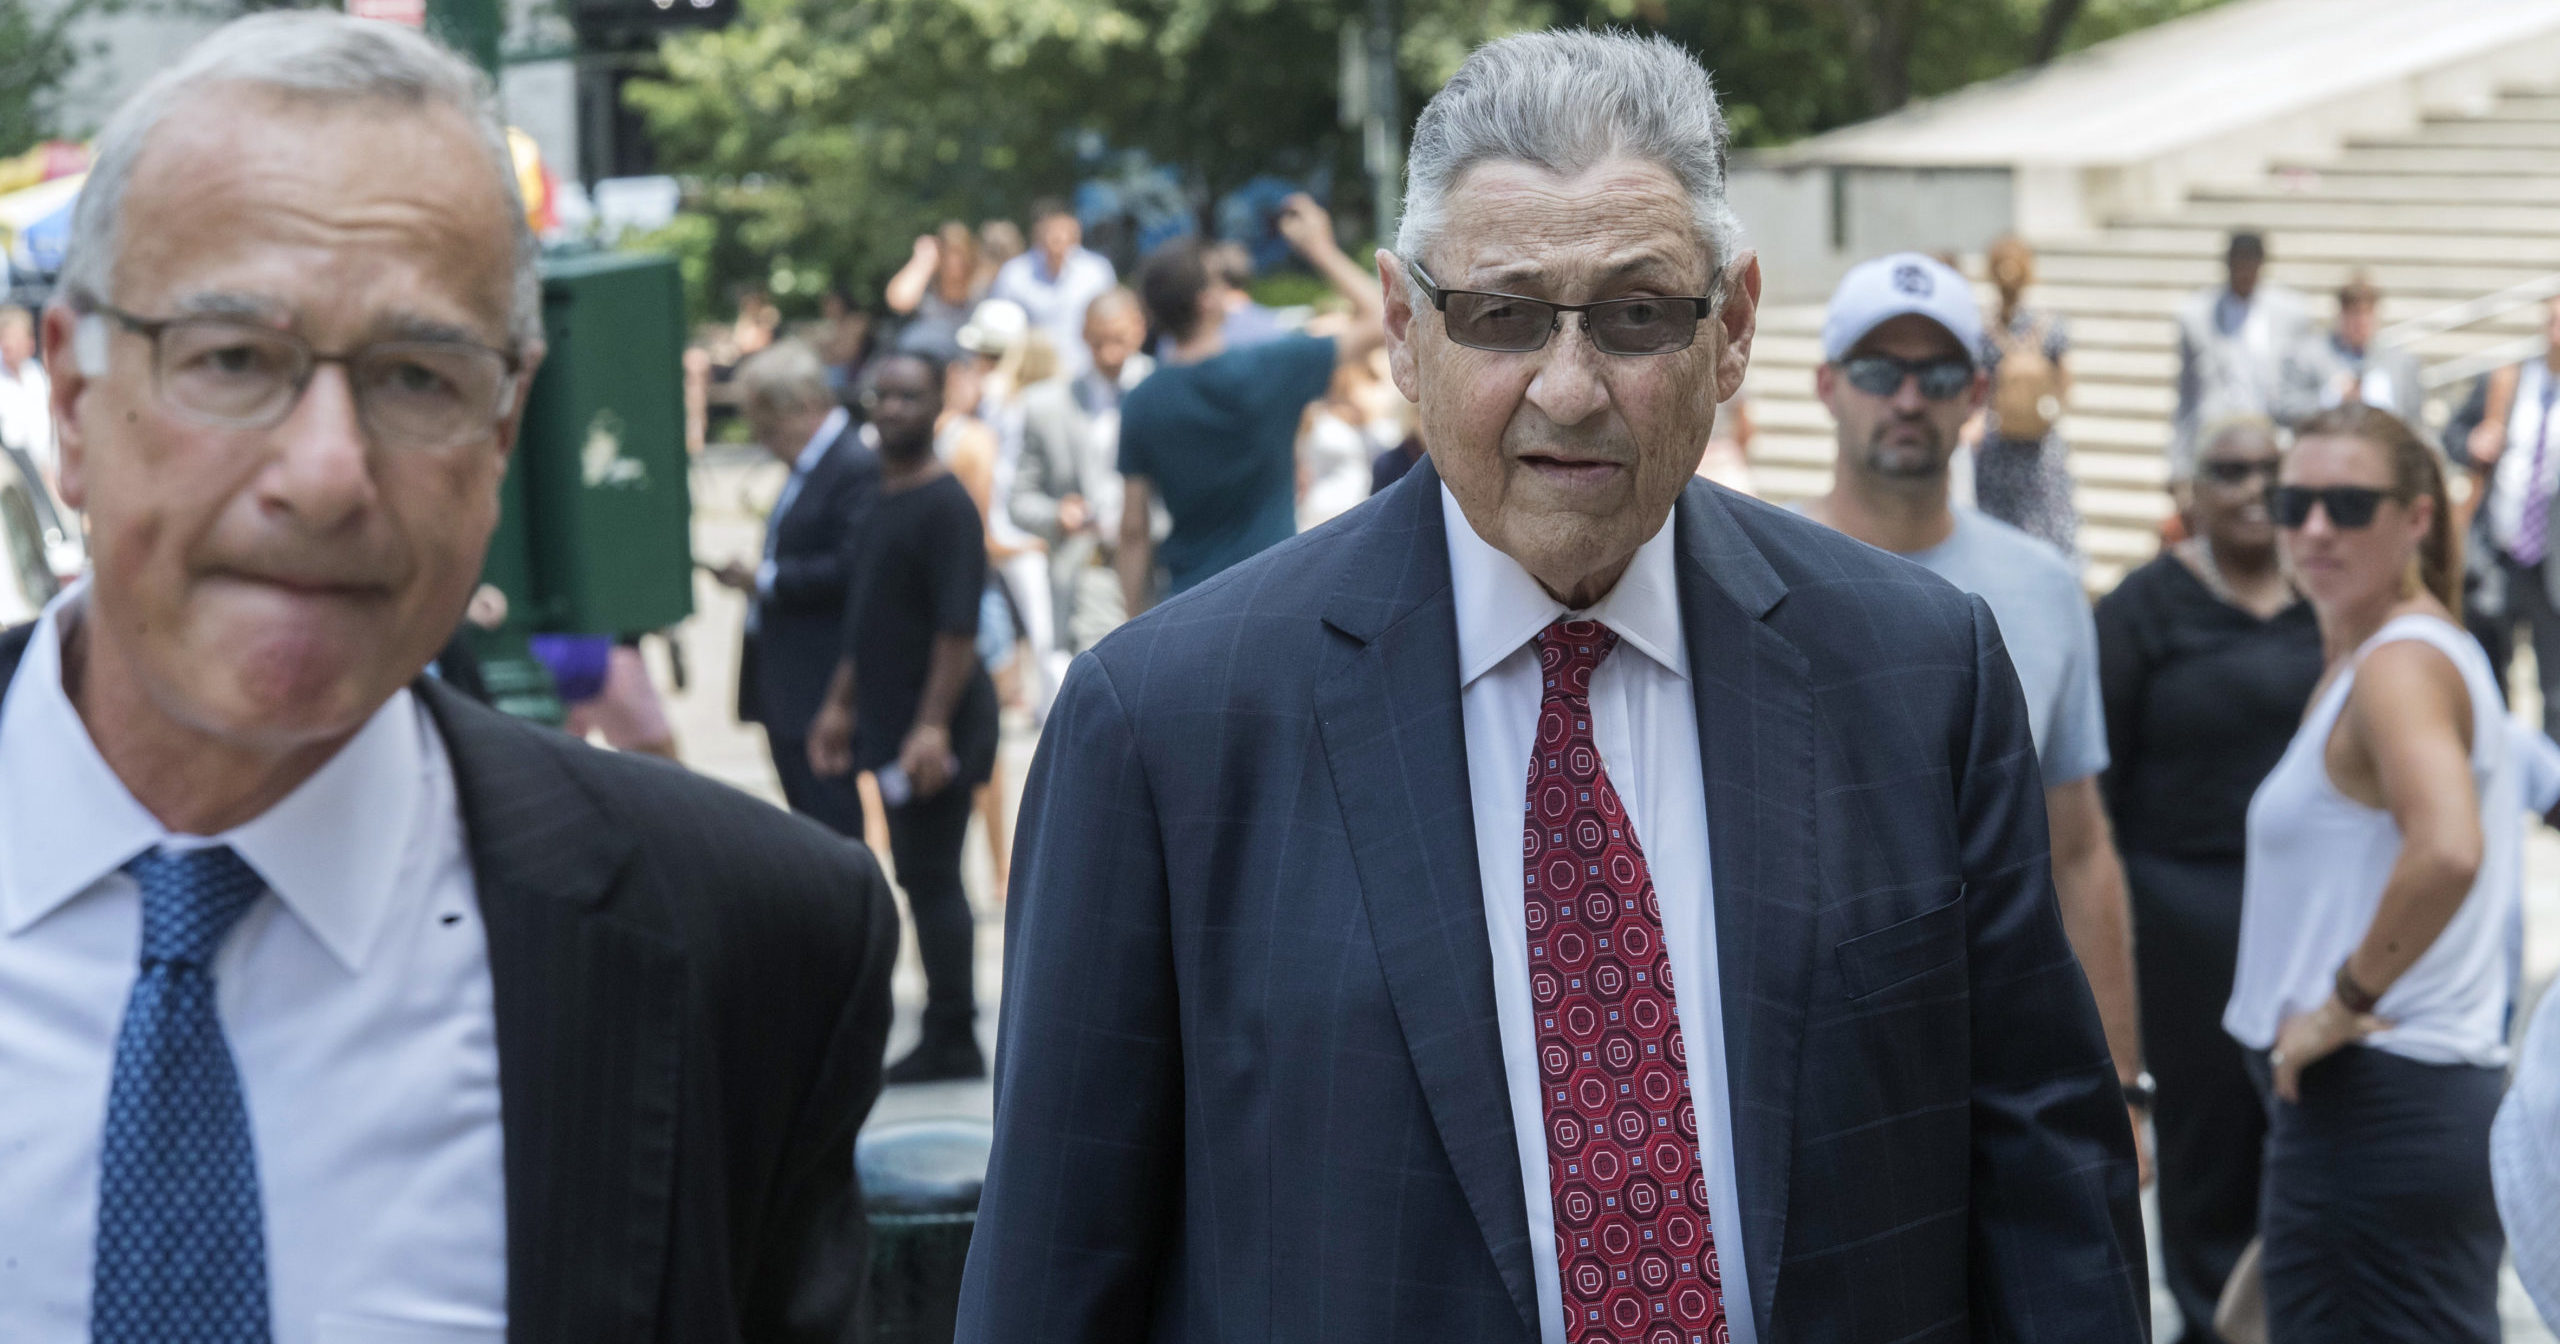 In this July 27, 2018, file photo, former New York Assembly Speaker Sheldon Silver, right, arrives at federal court in New York. Silver has been sentenced to 6 1/2 years in prison on corruption charges.